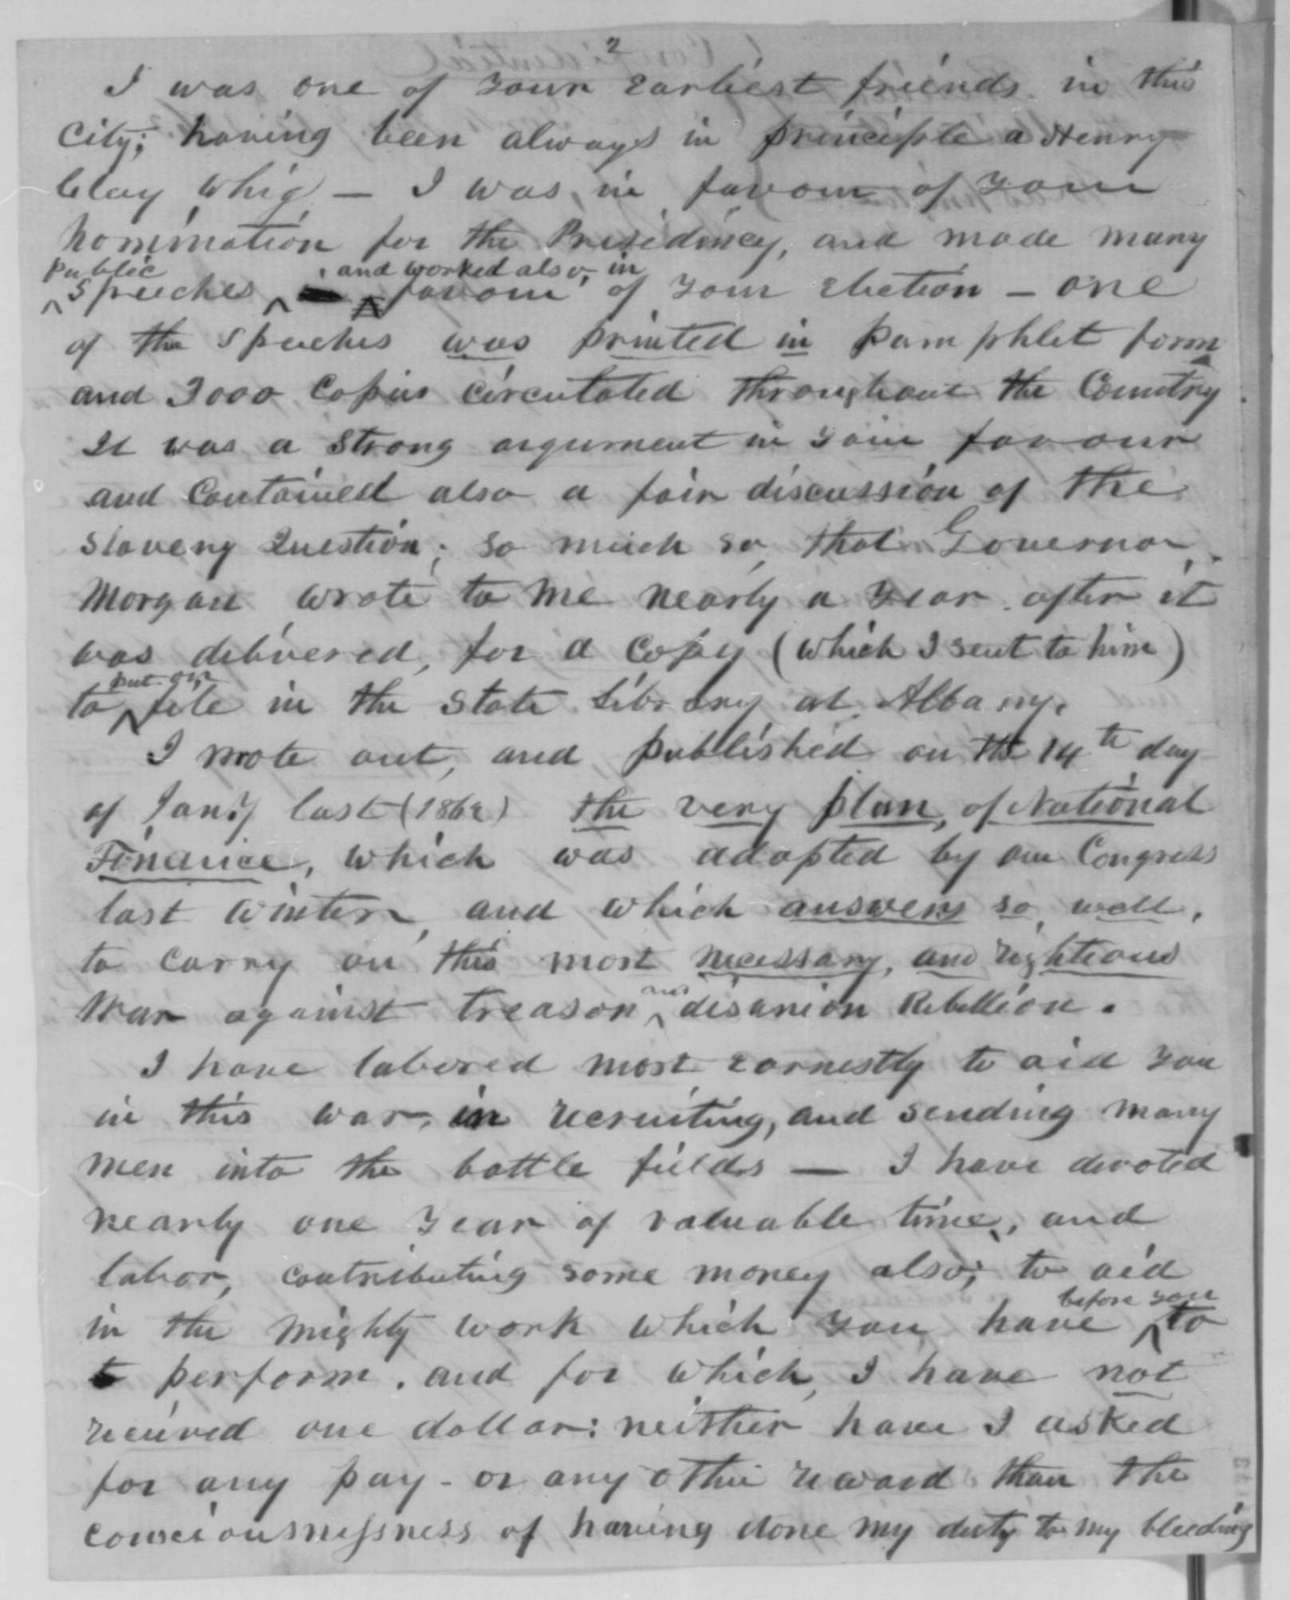 Samuel Hotaling to Abraham Lincoln, Monday, January 12, 1863  (Seeks pass to New Orleans and offers political advice)